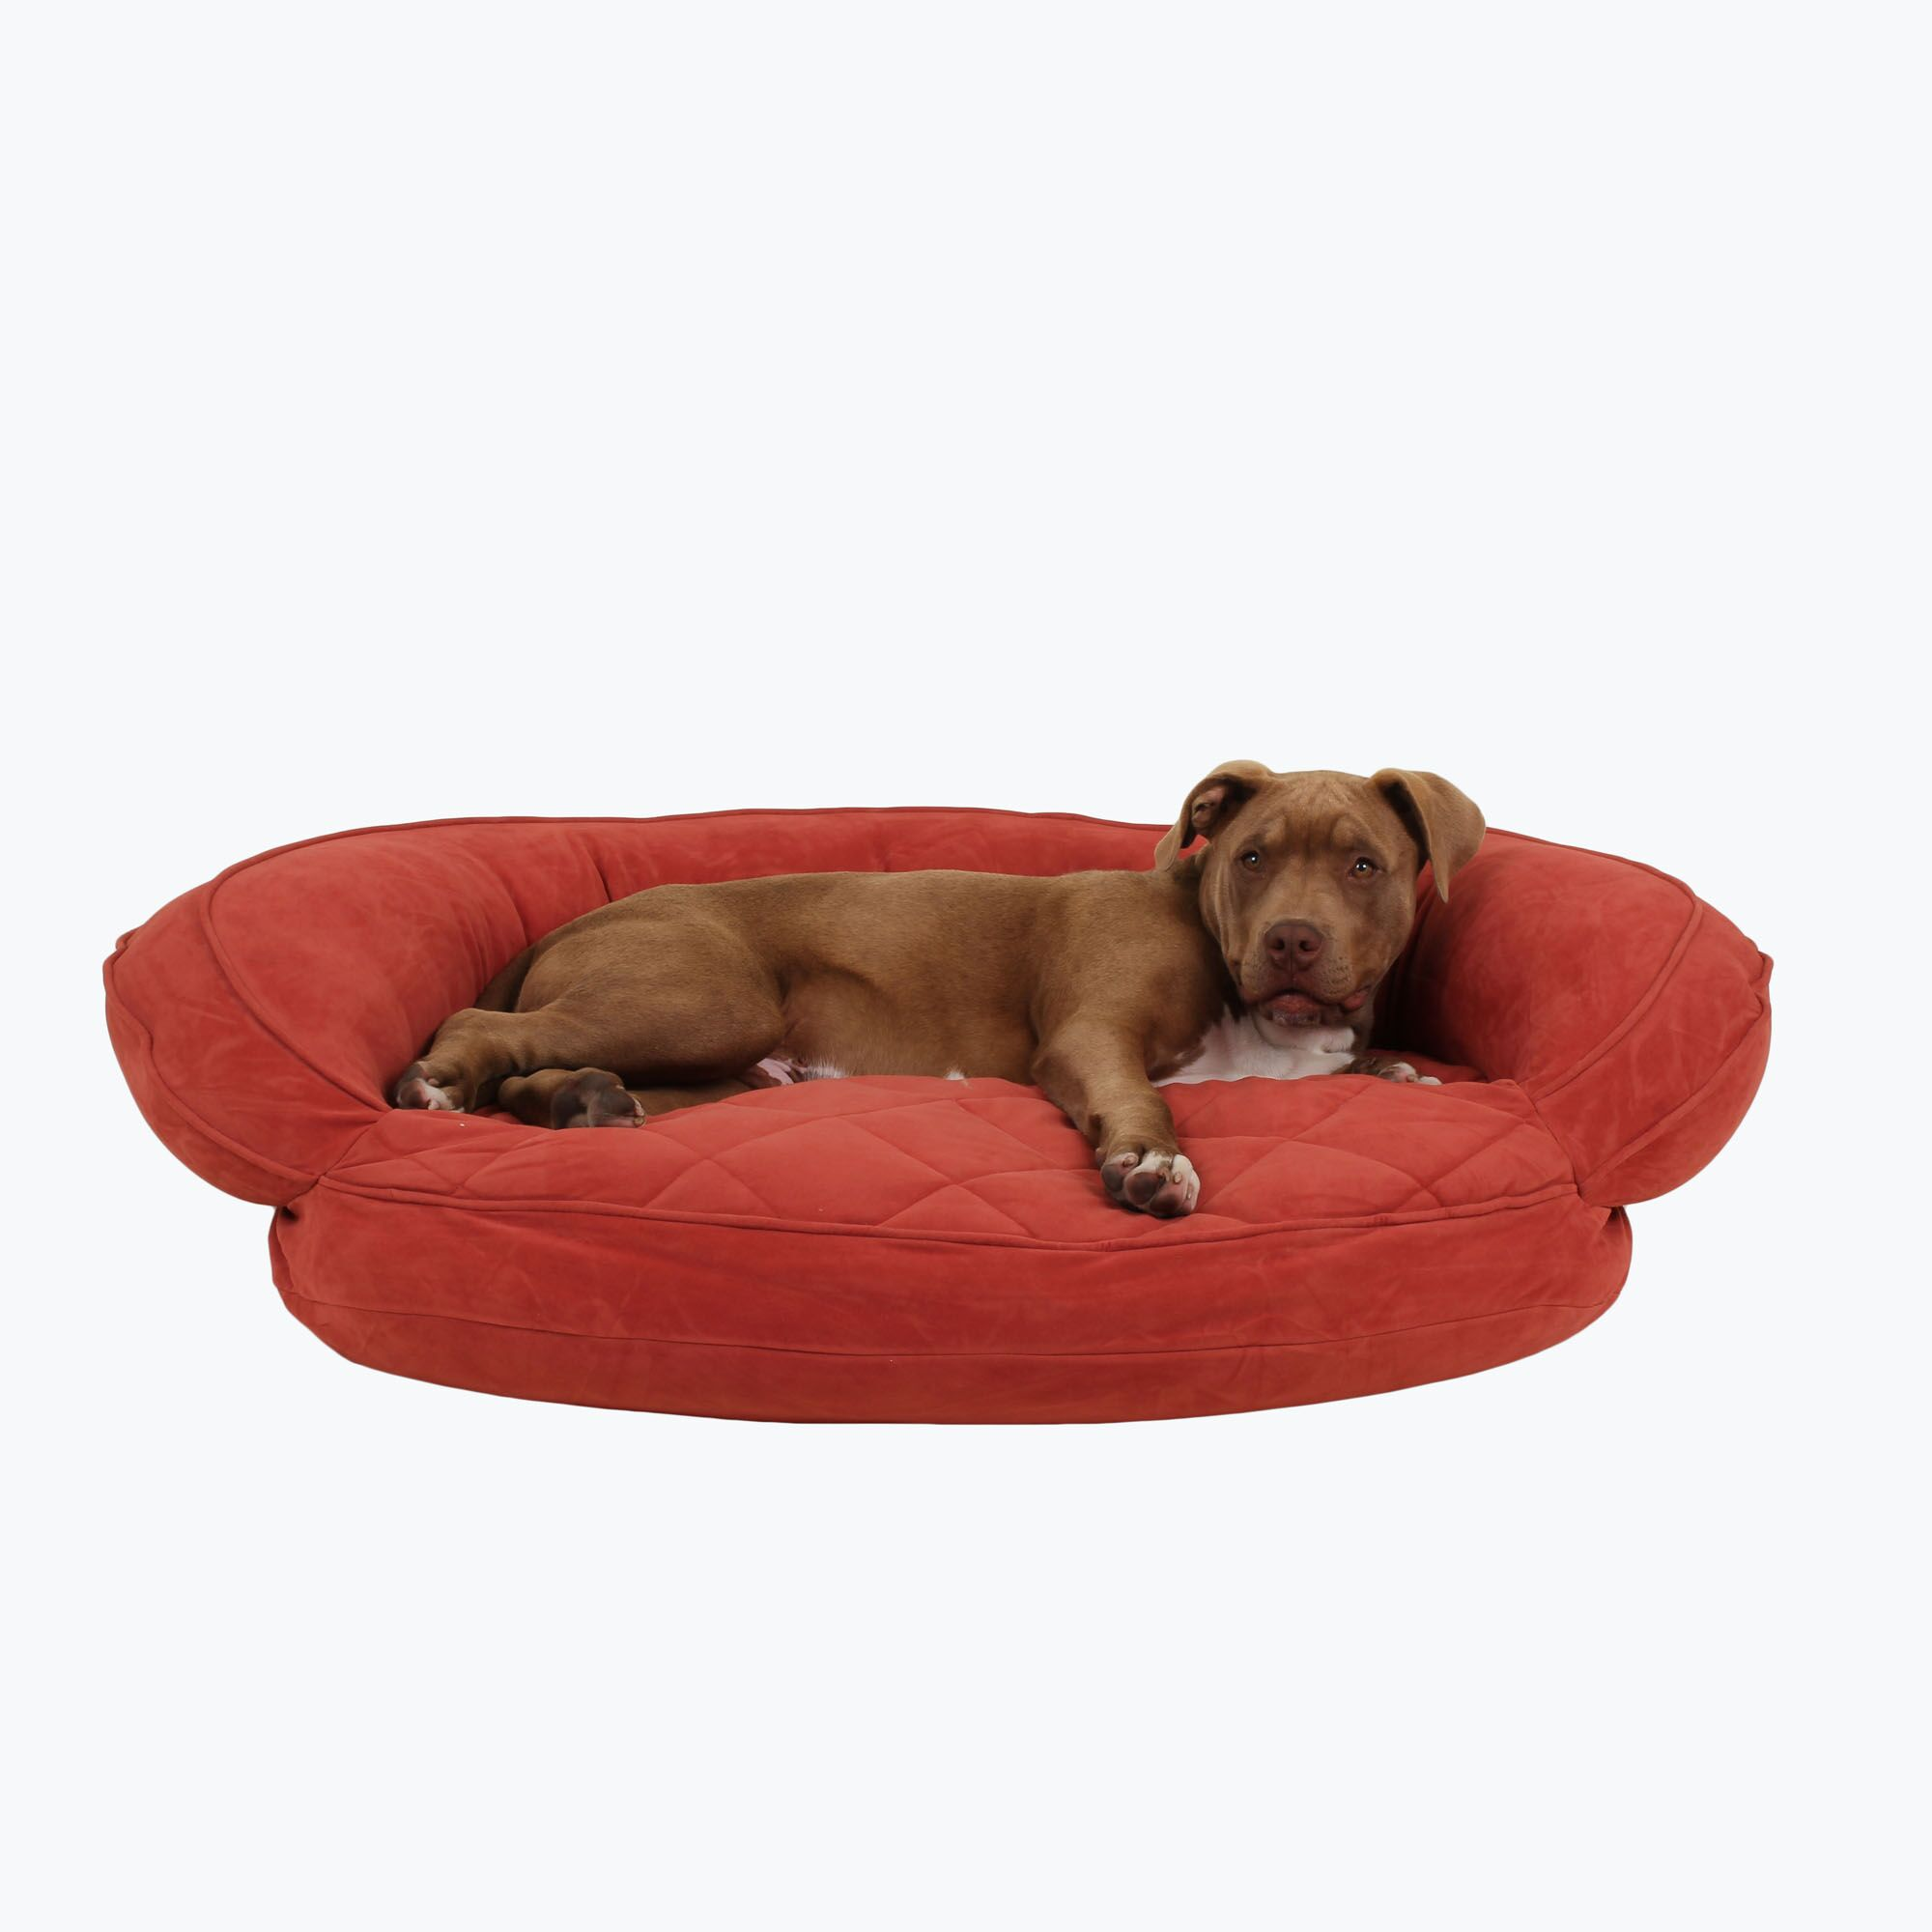 Microfiber Quilted Bolster Bed with Moisture Barrier Protection Color: Red, Size: 36